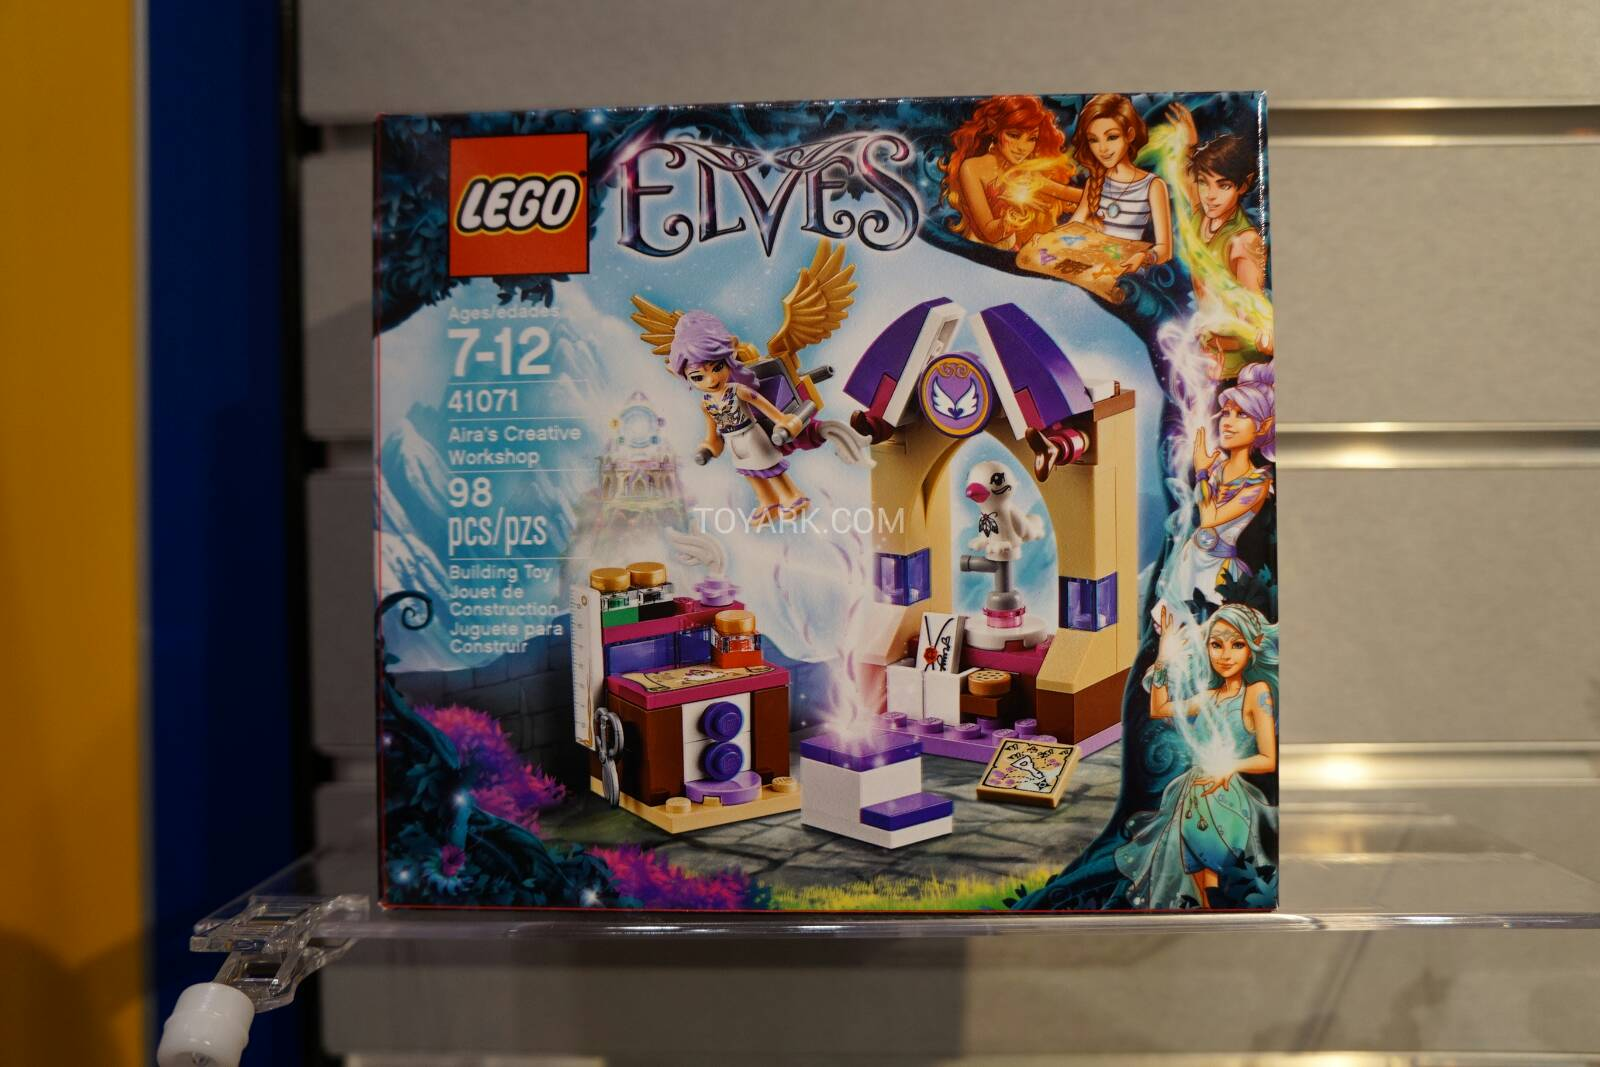 Toy-Fair-2015-LEGO-Elves-002.jpg